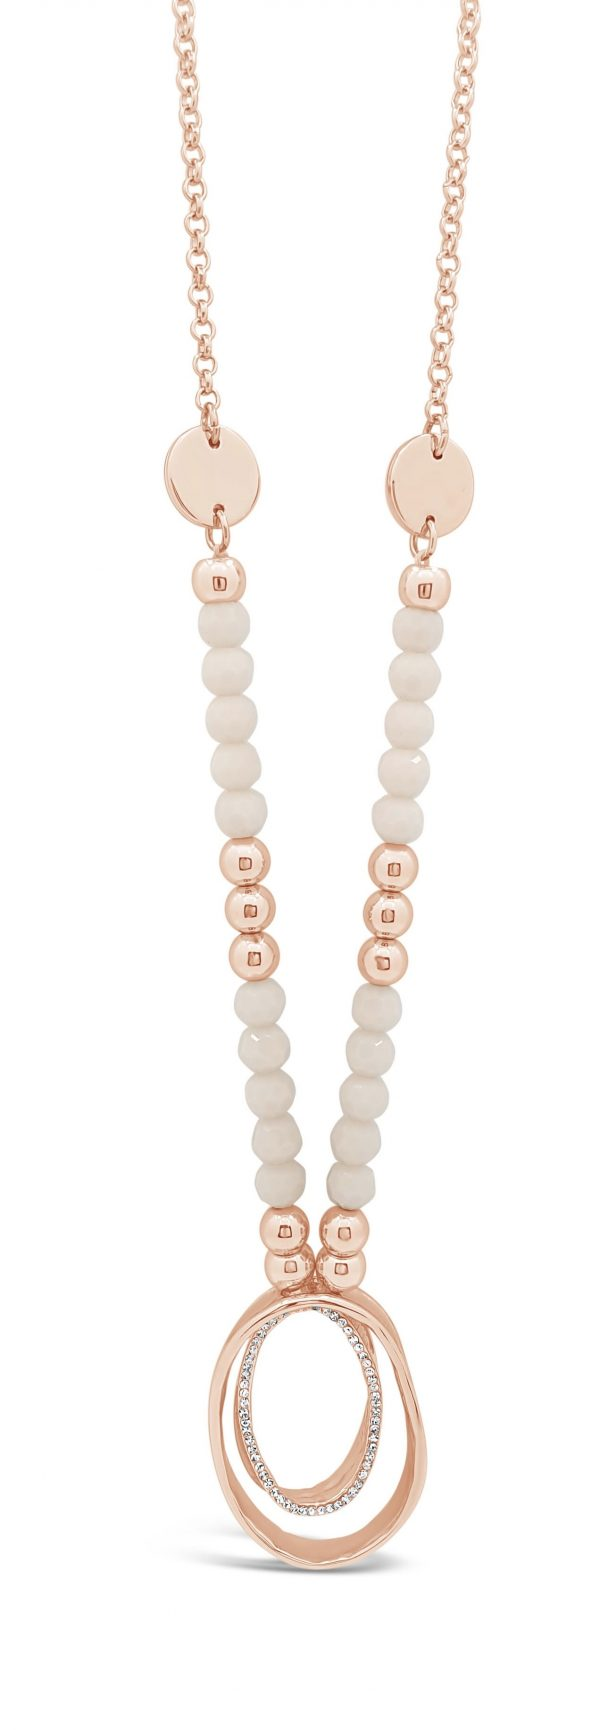 ABSOLUTE N2091RS ROSE GOLD NECKLACE